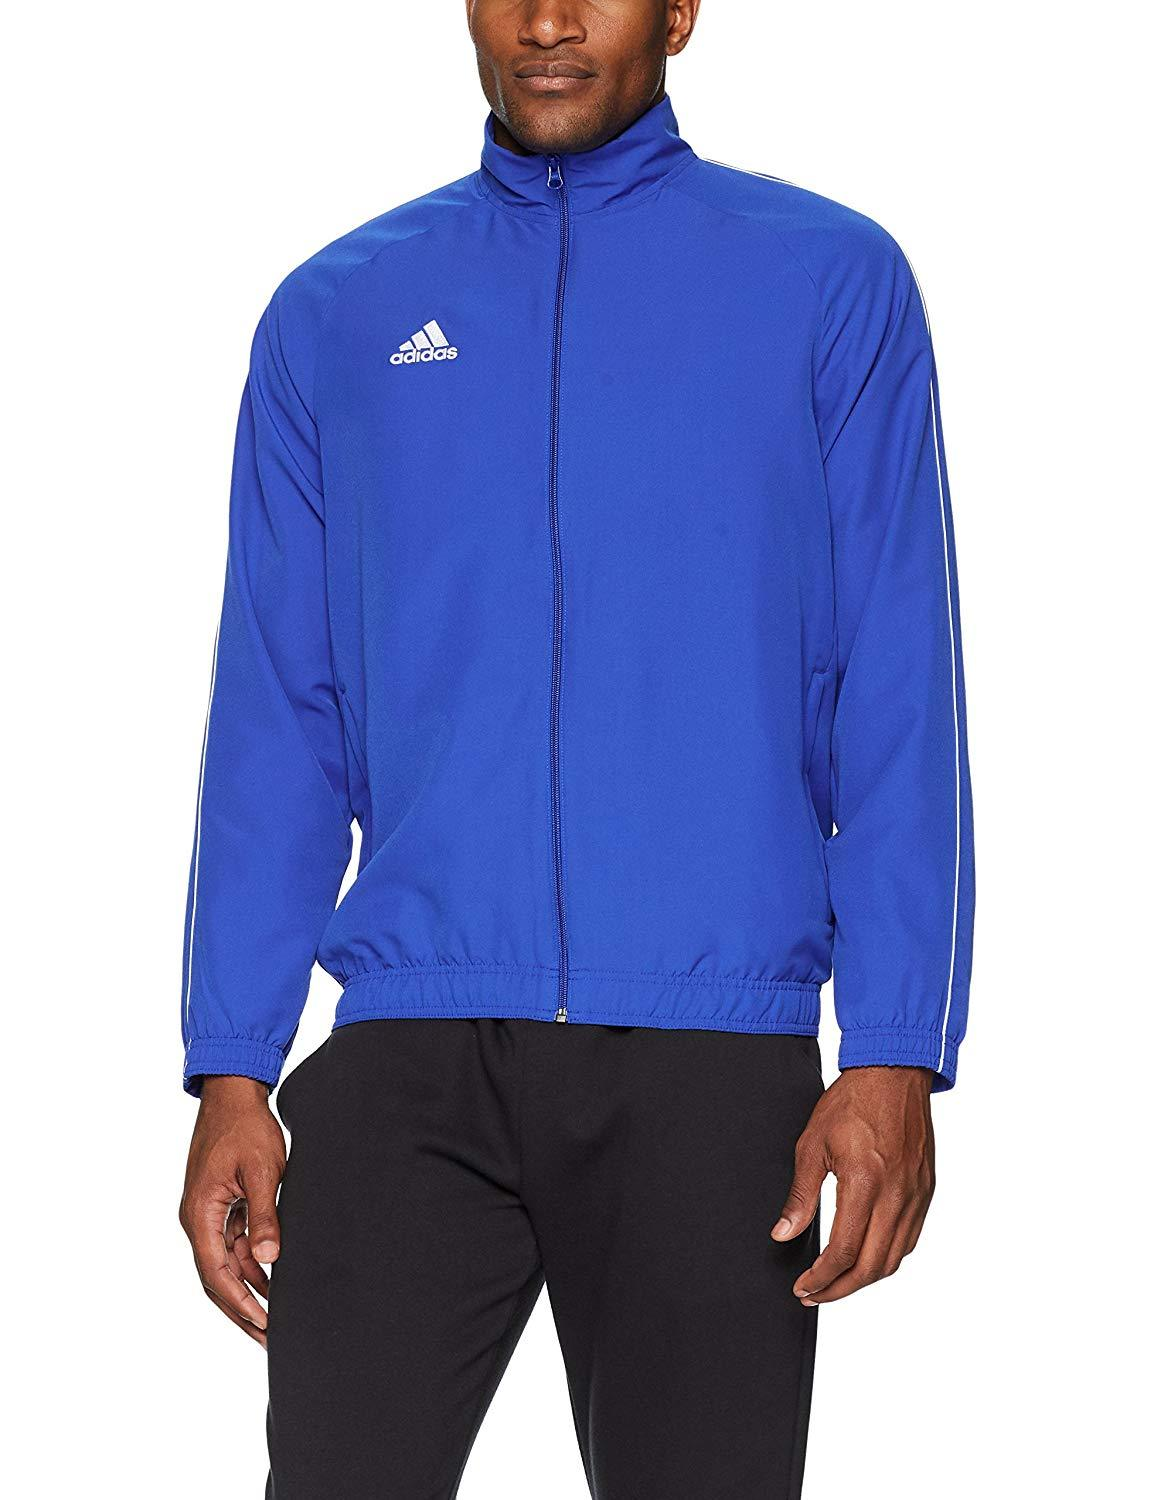 a3f6197407 adidas Mens Soccer Core18 Presentation Jacket in 2019 | Products ...